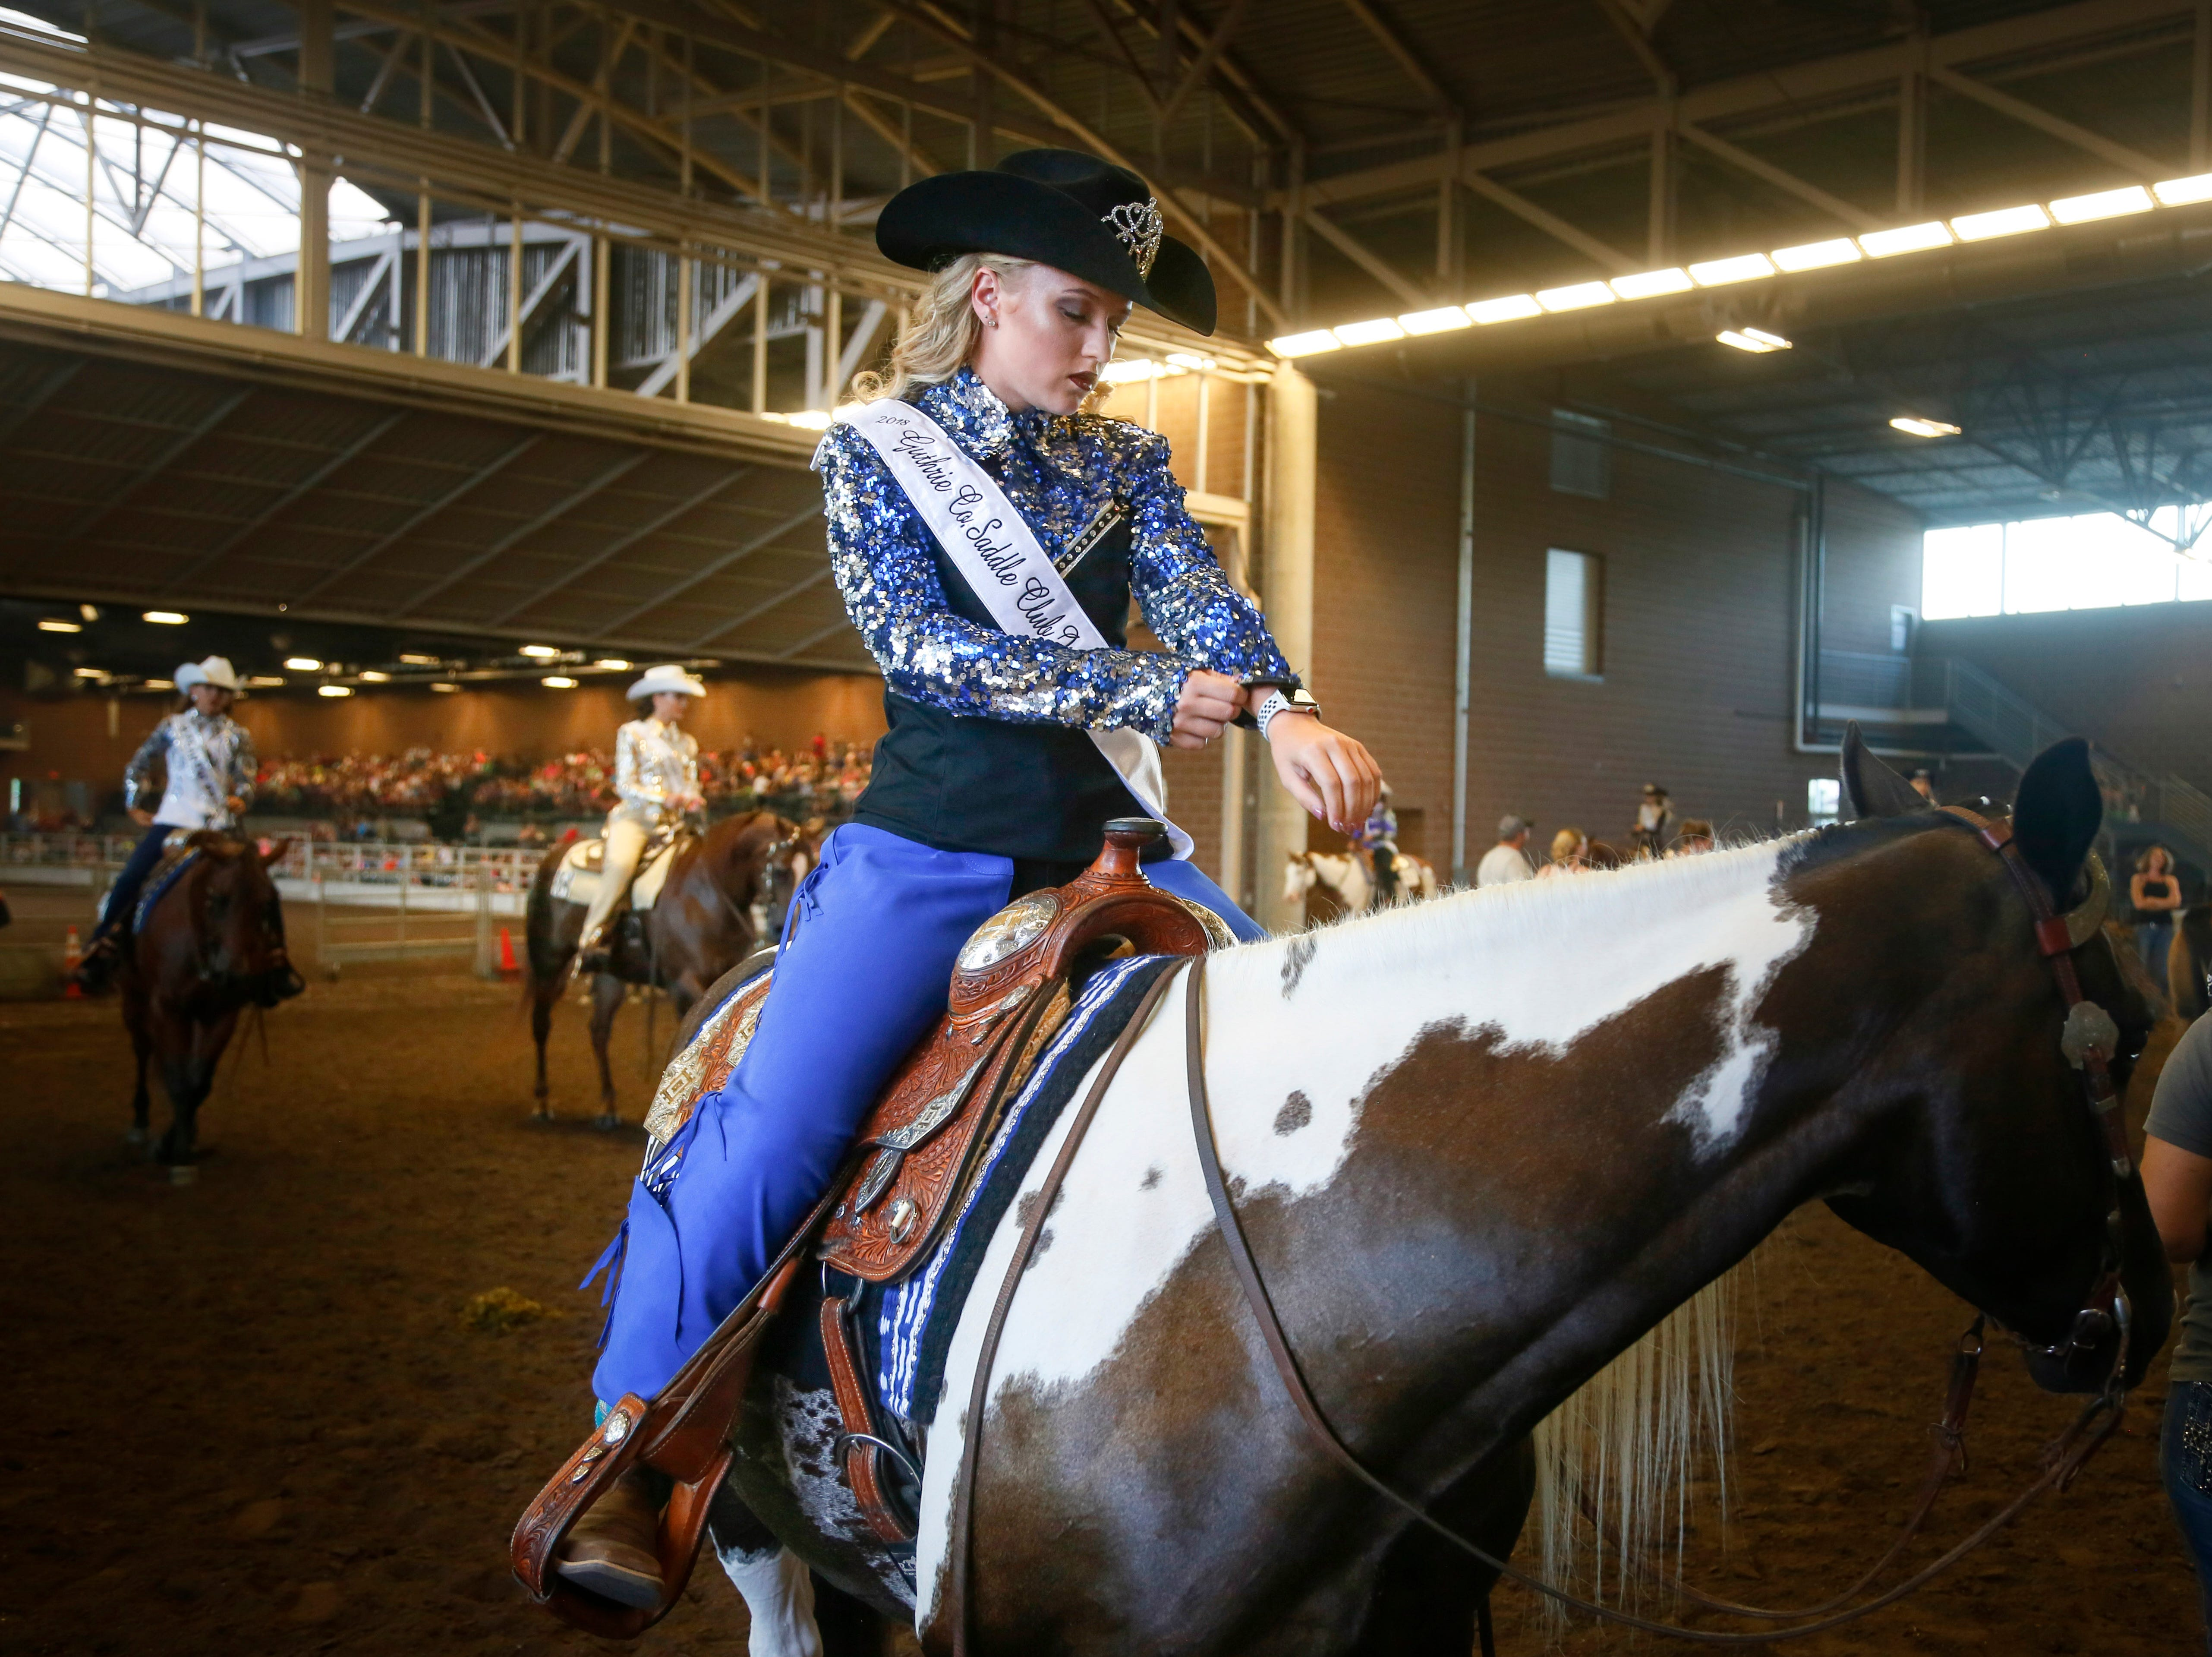 Lillian Berger of Grimes gets ready before the Cowgirl Queen Contest at the Iowa State Fair Friday, Aug. 10, 2018.